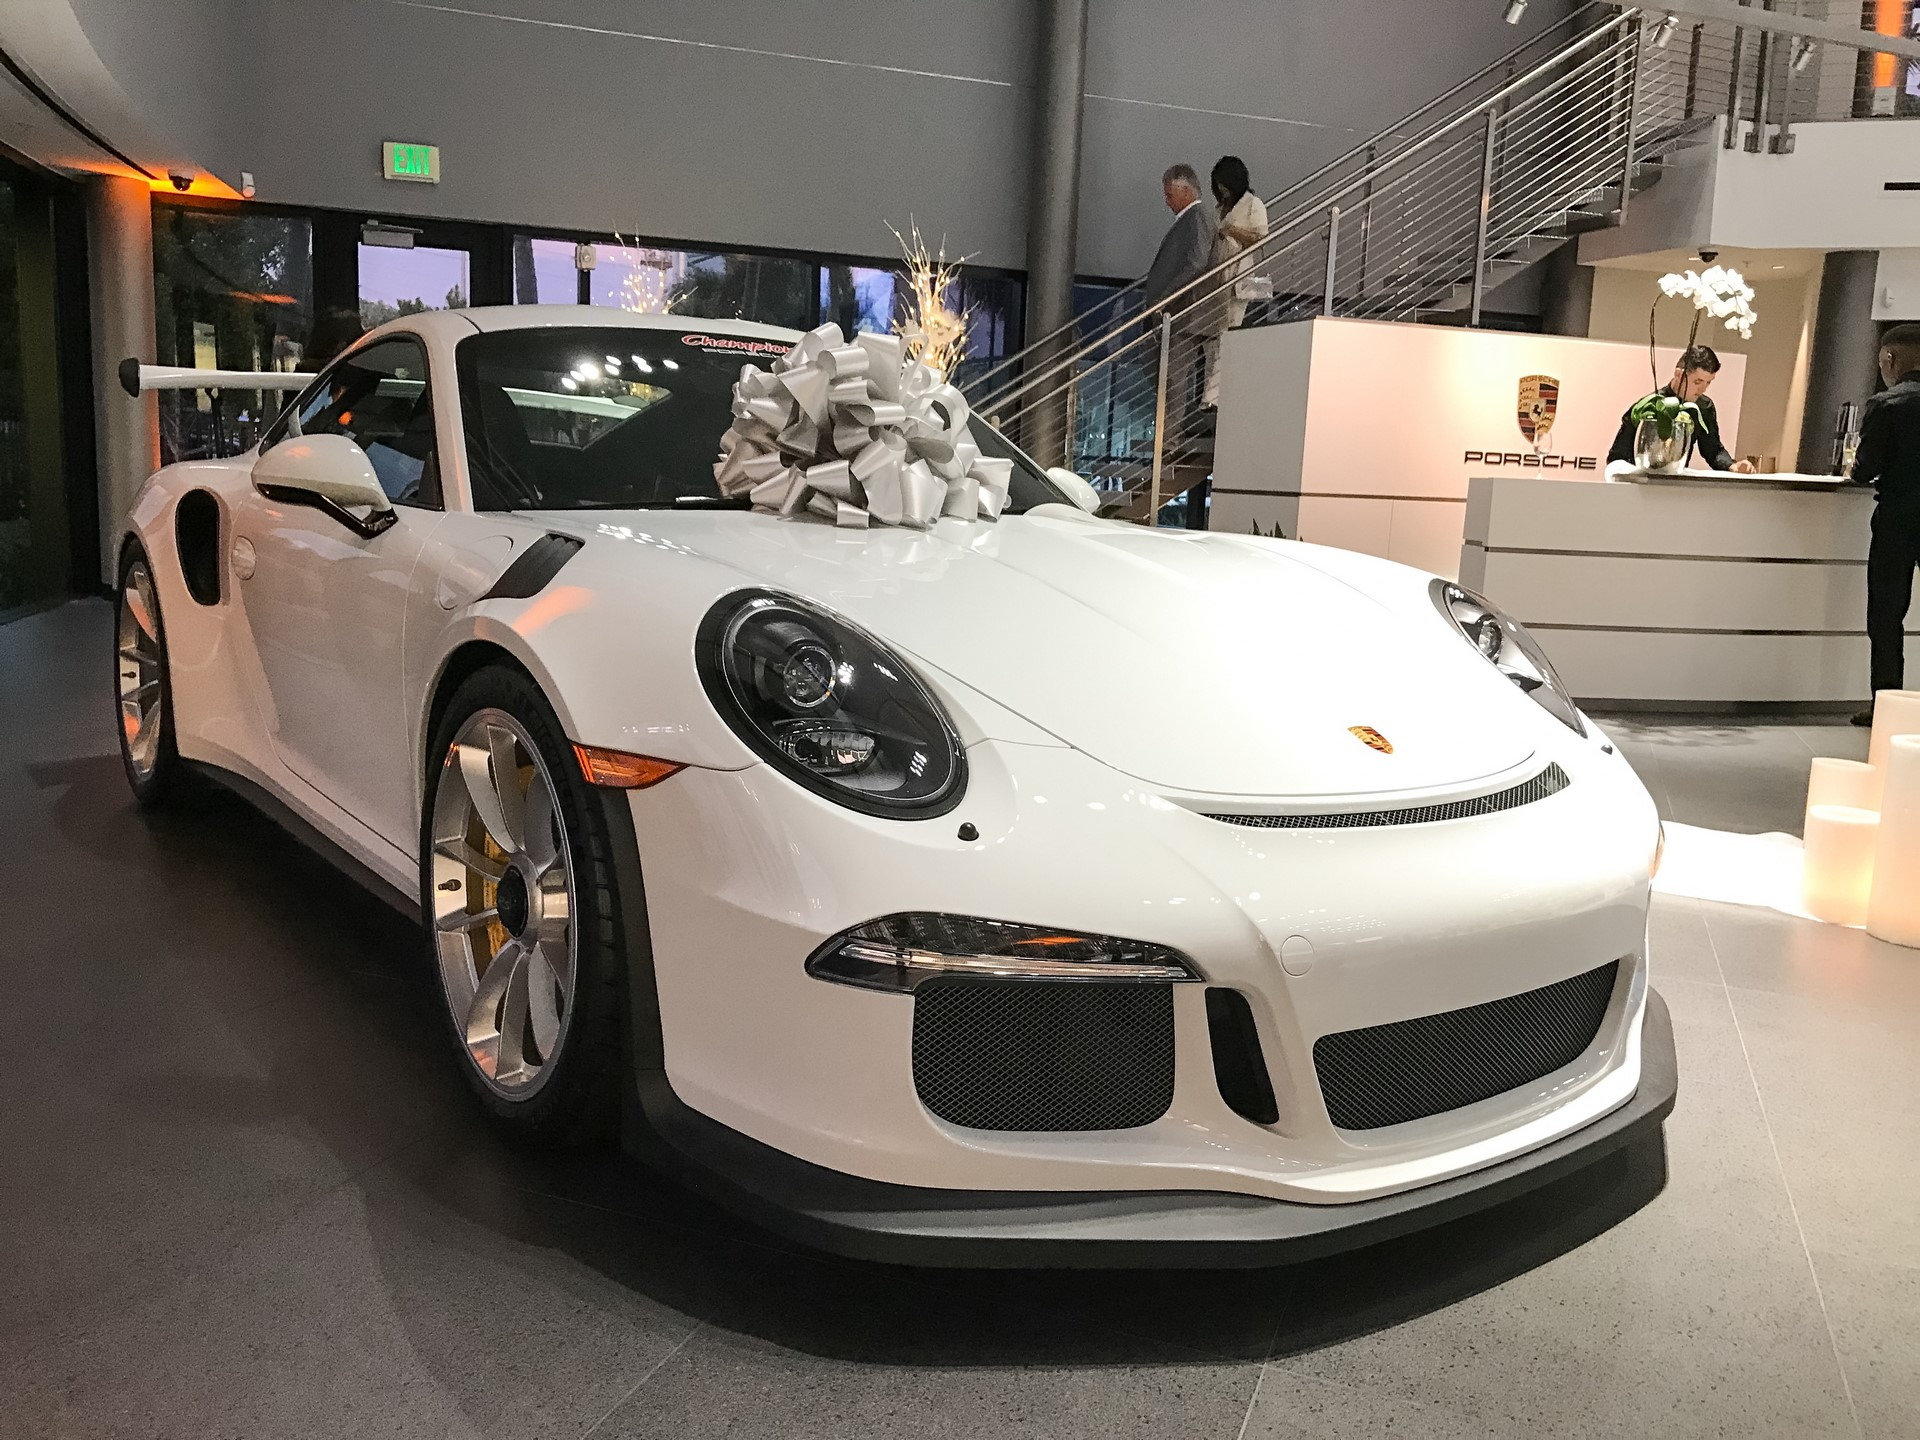 Champion Porsche wedding (1)